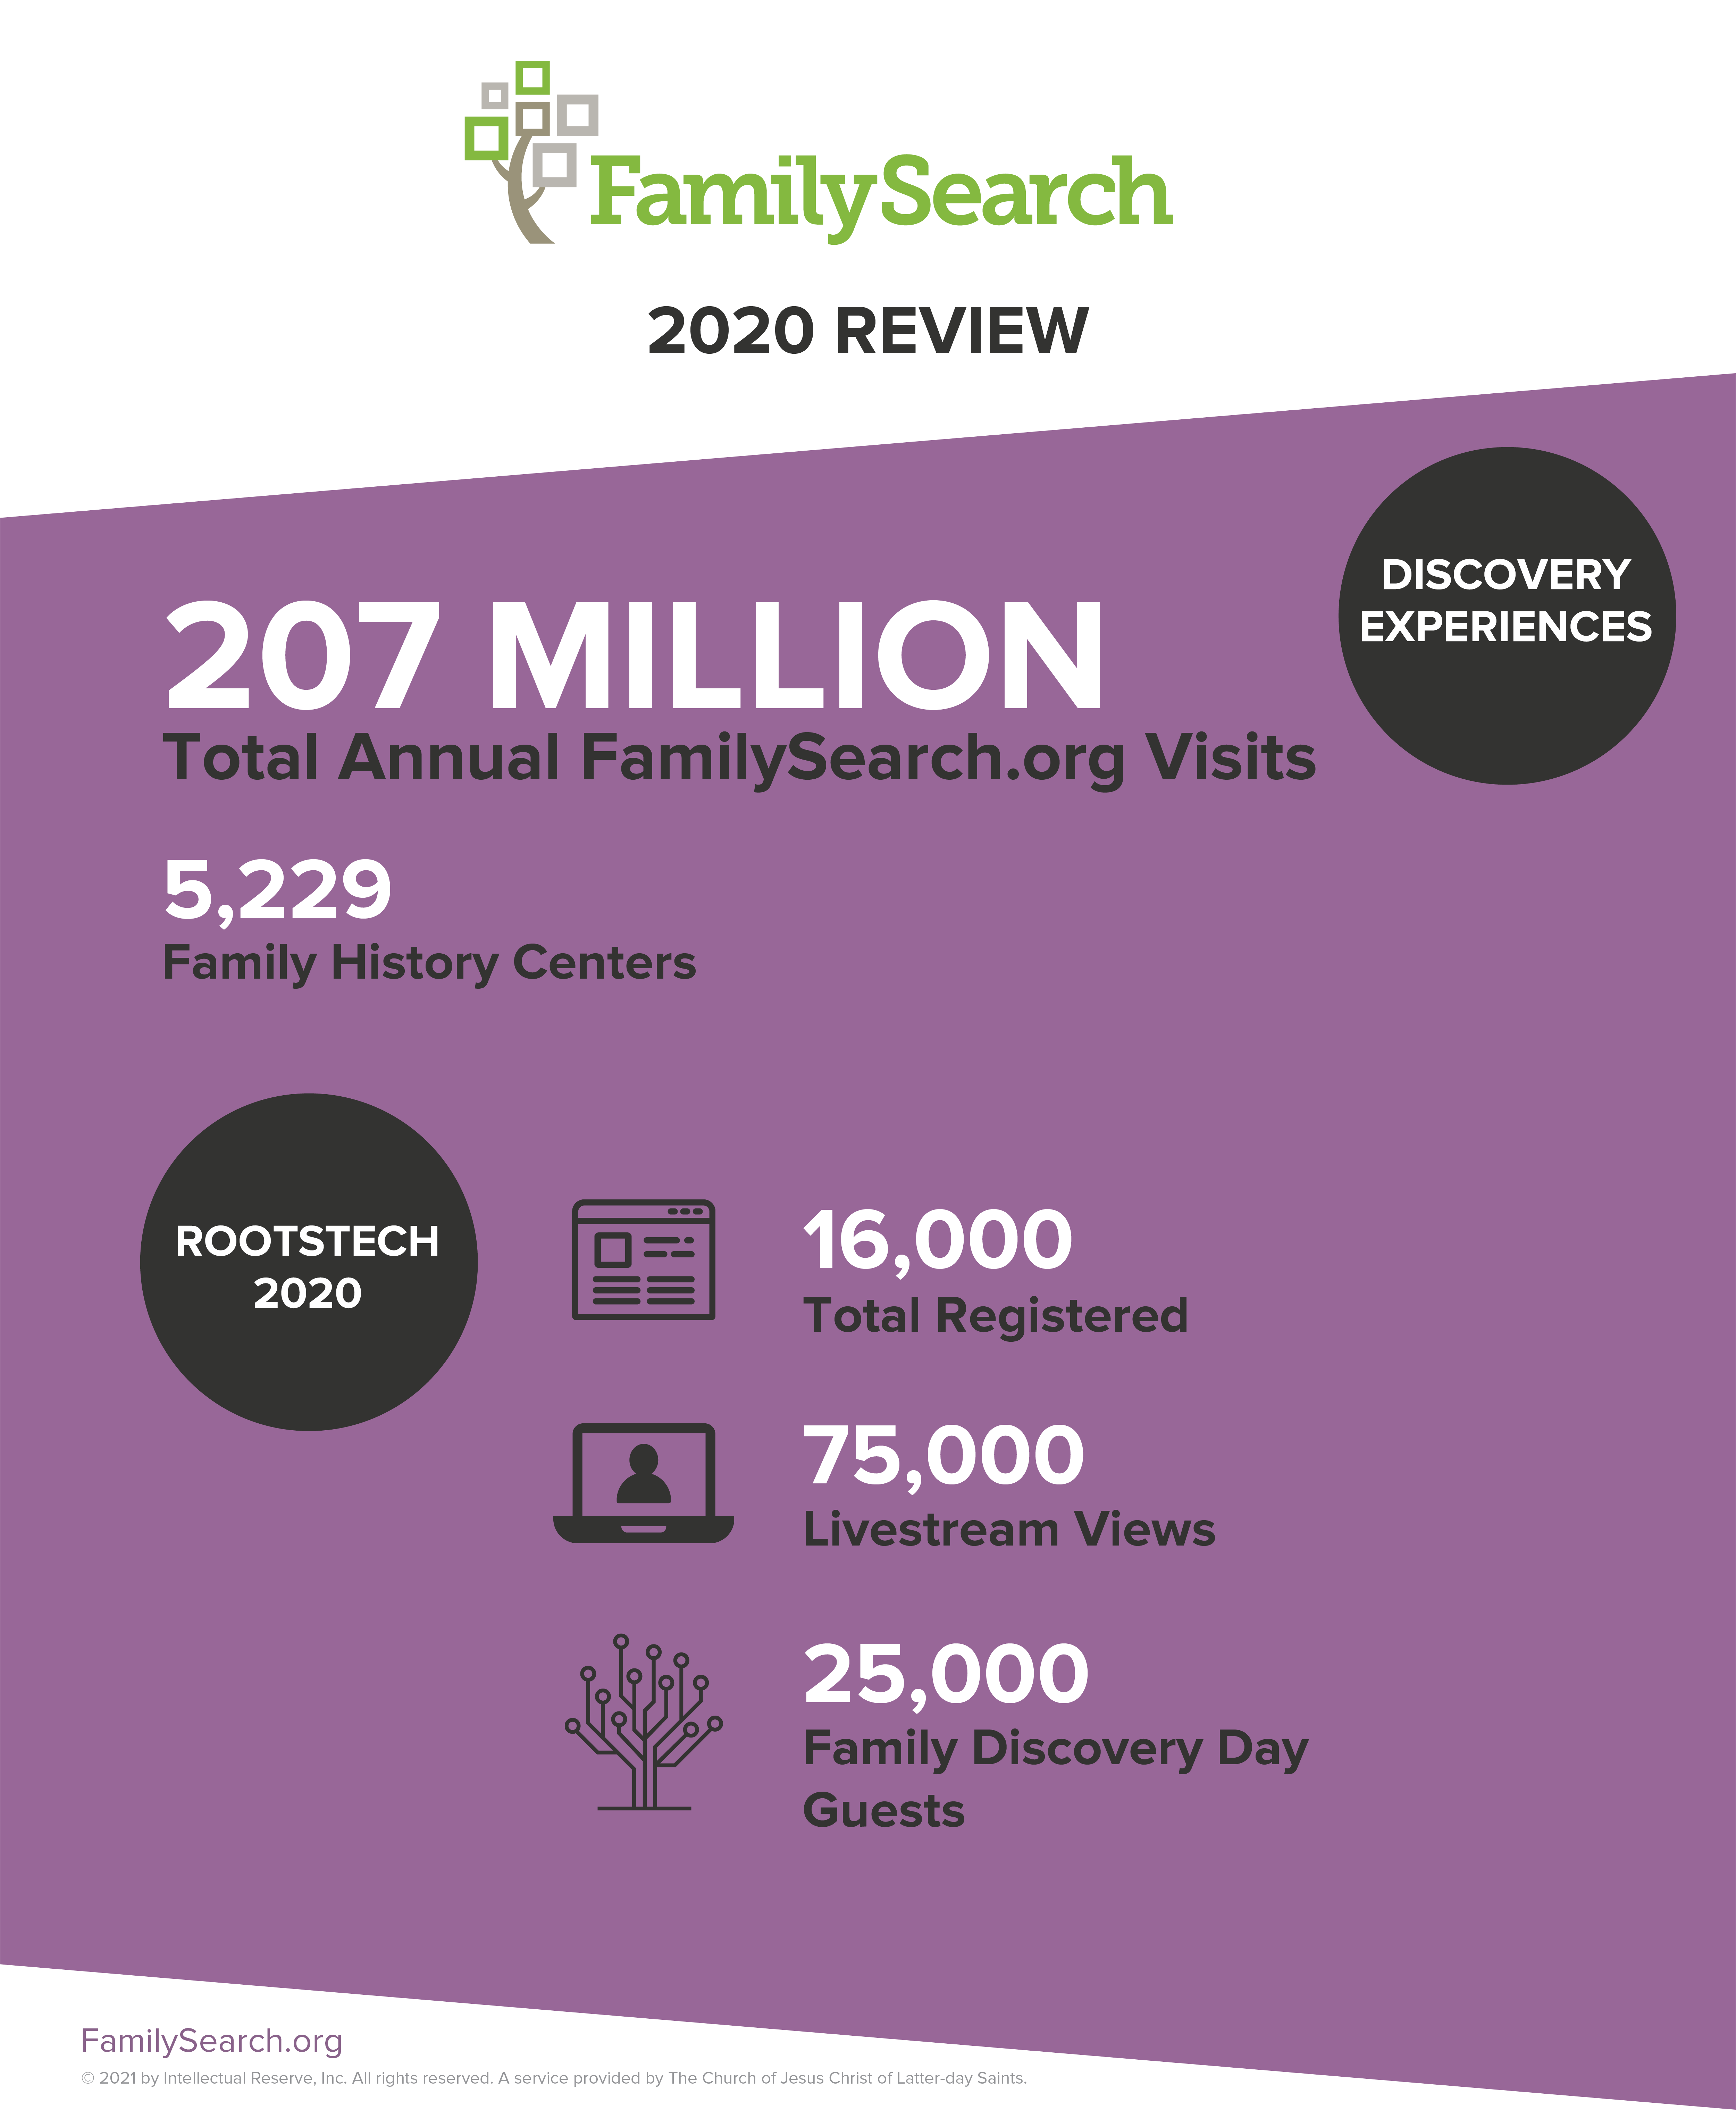 FamilySearch Discovery Experiences Highlights 2020